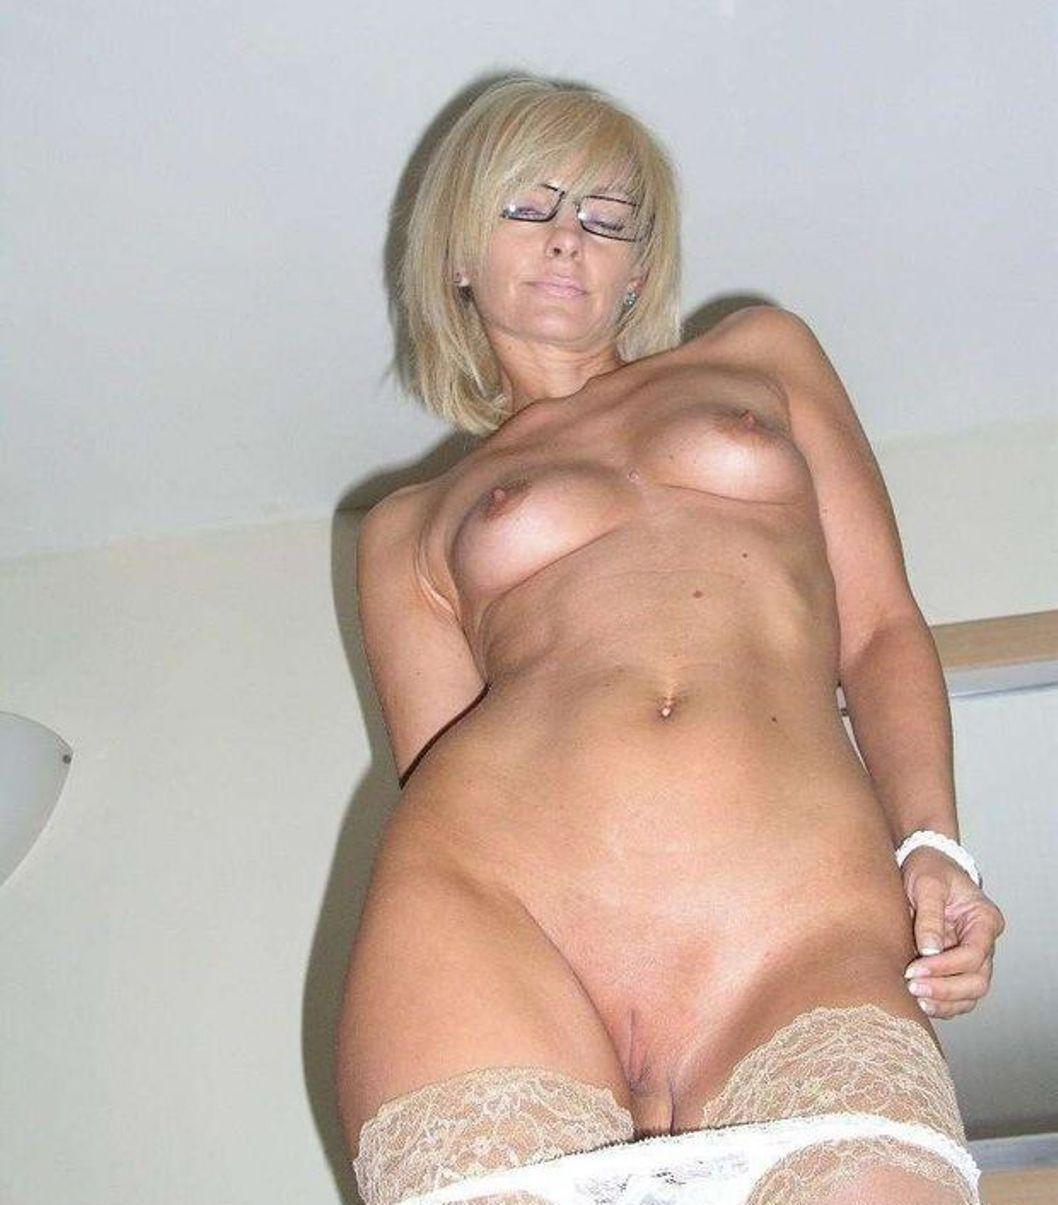 Horny wife shows of her hot body